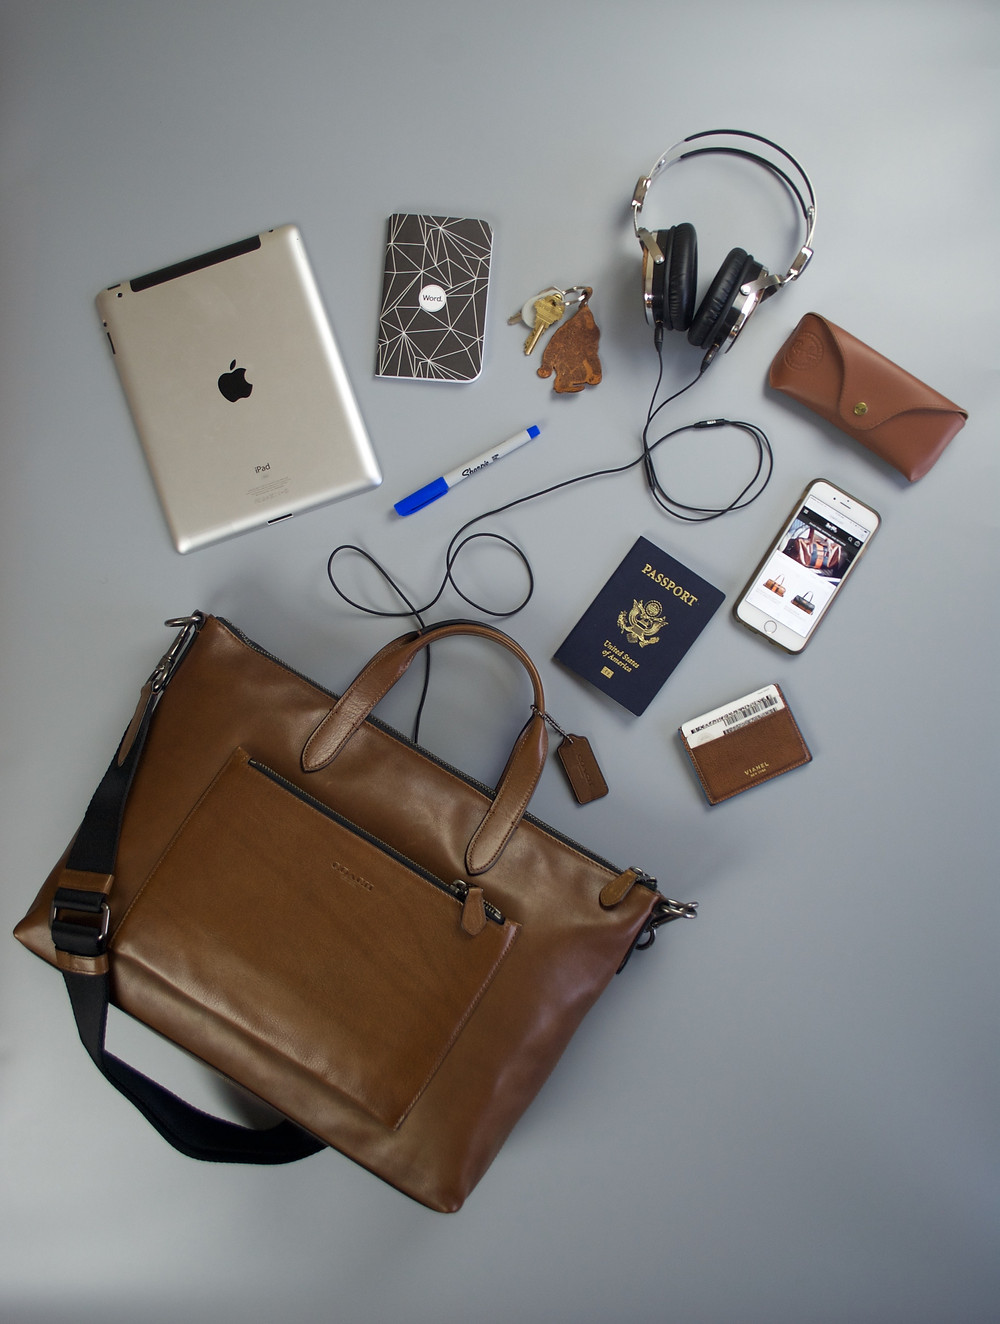 flatlay including Coach briefcase, ipad, wallet, passport, headphones, iphone, and sunglasses